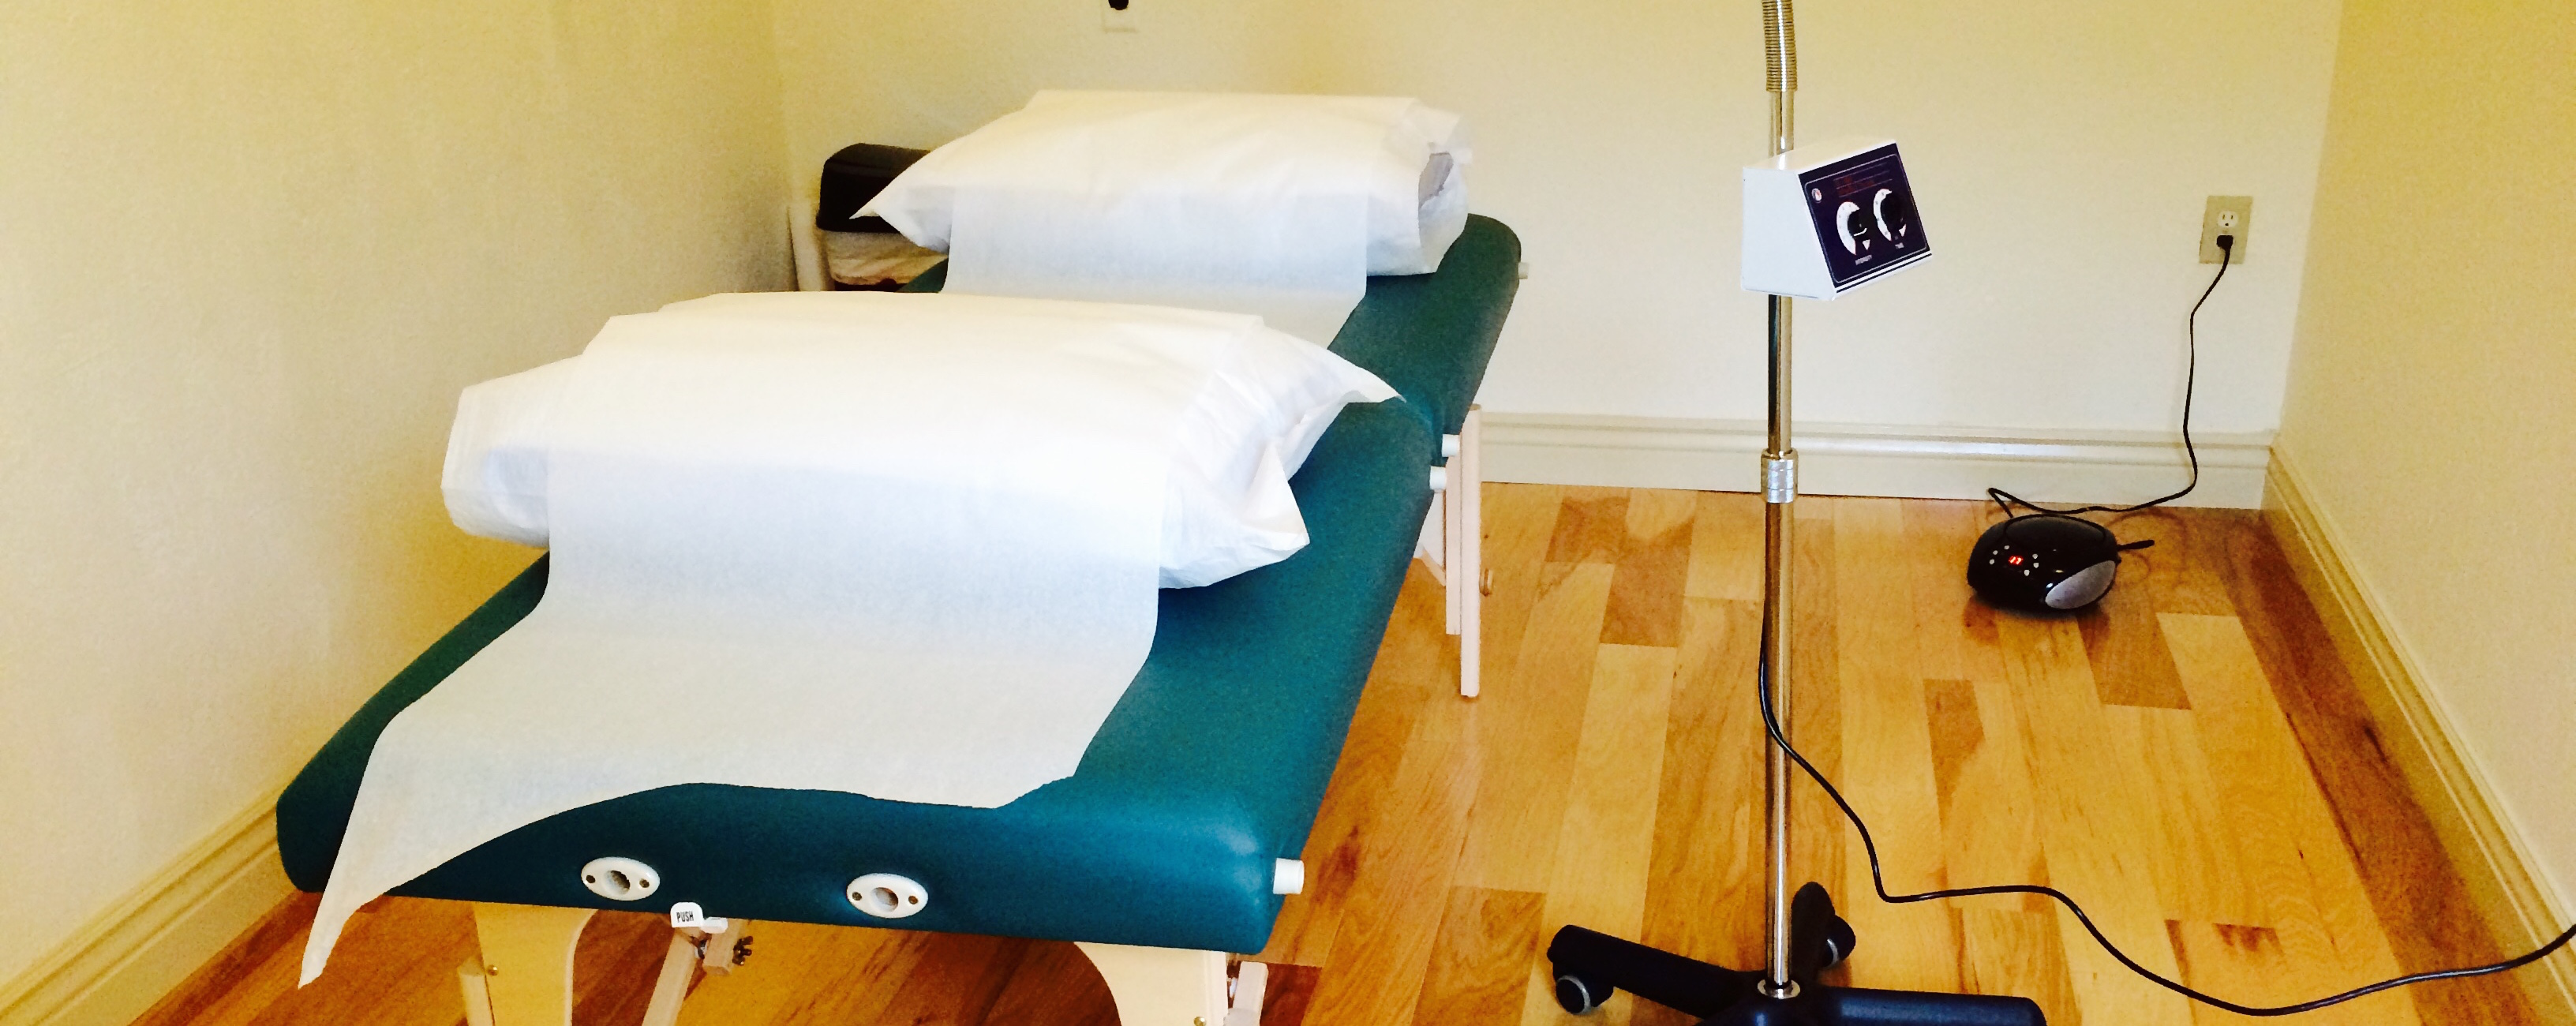 Boca Acupuncture Bed